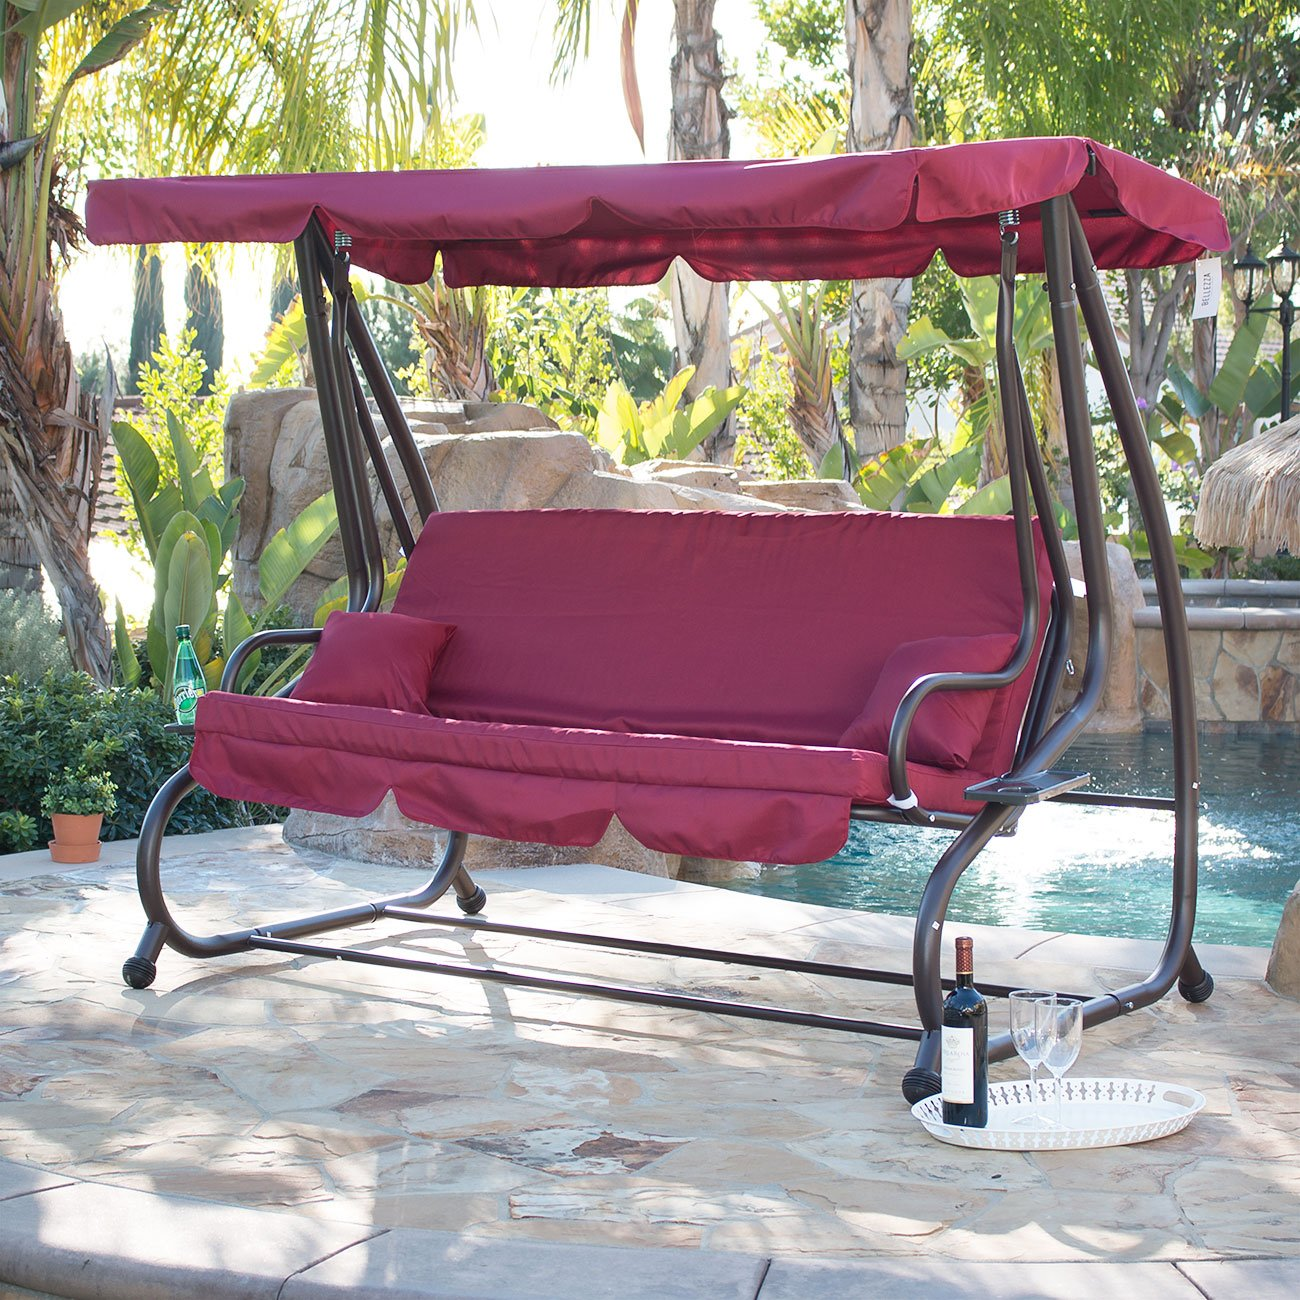 amazon     belleze outdoor canopy porch swing bed hammock tilt canopy with steel frame  burgundy    garden  u0026 outdoor amazon     belleze outdoor canopy porch swing bed hammock tilt      rh   amazon